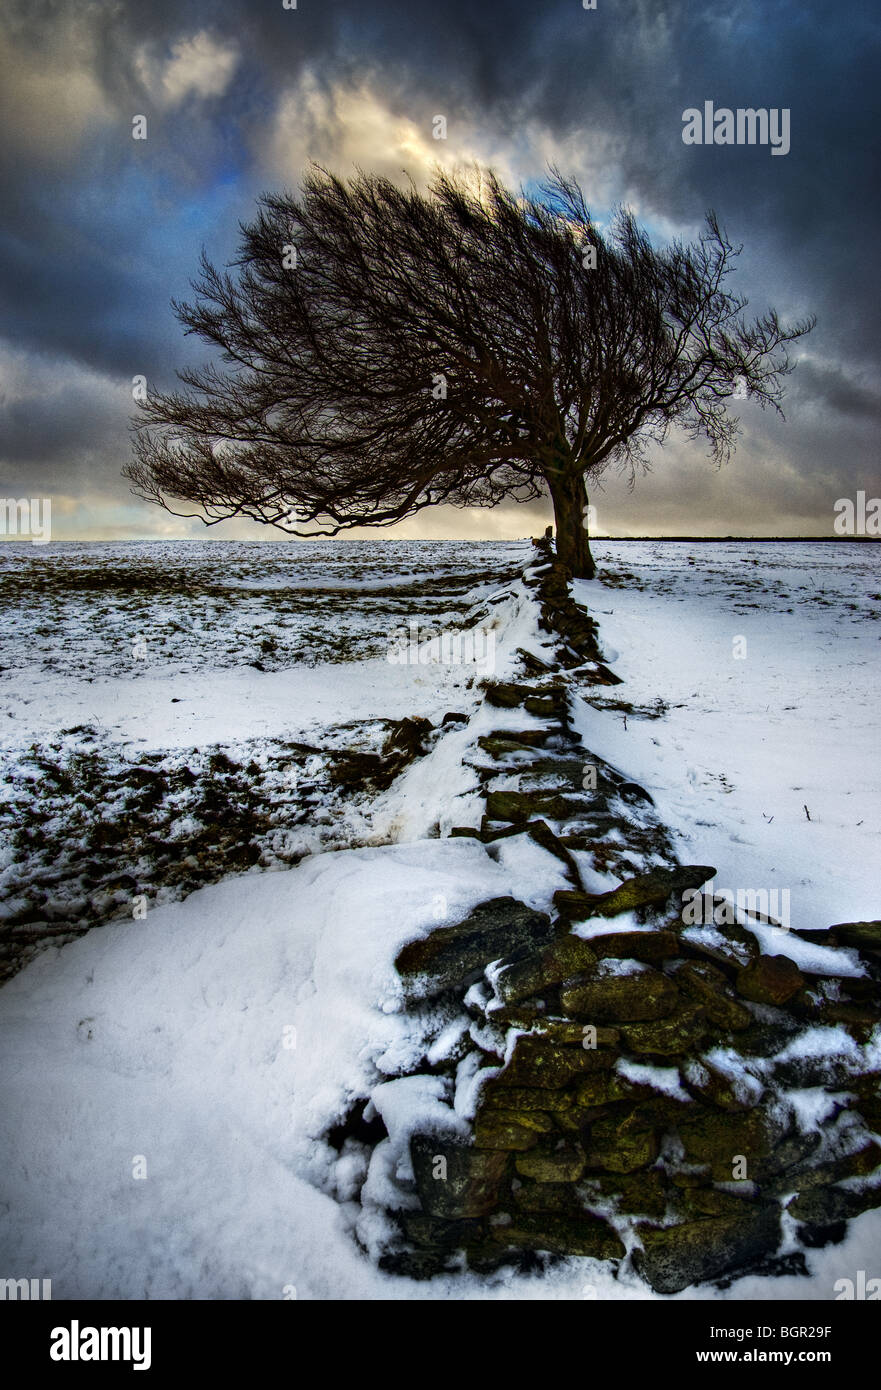 Hawthorn tree in snow, near Meltham - Stock Image